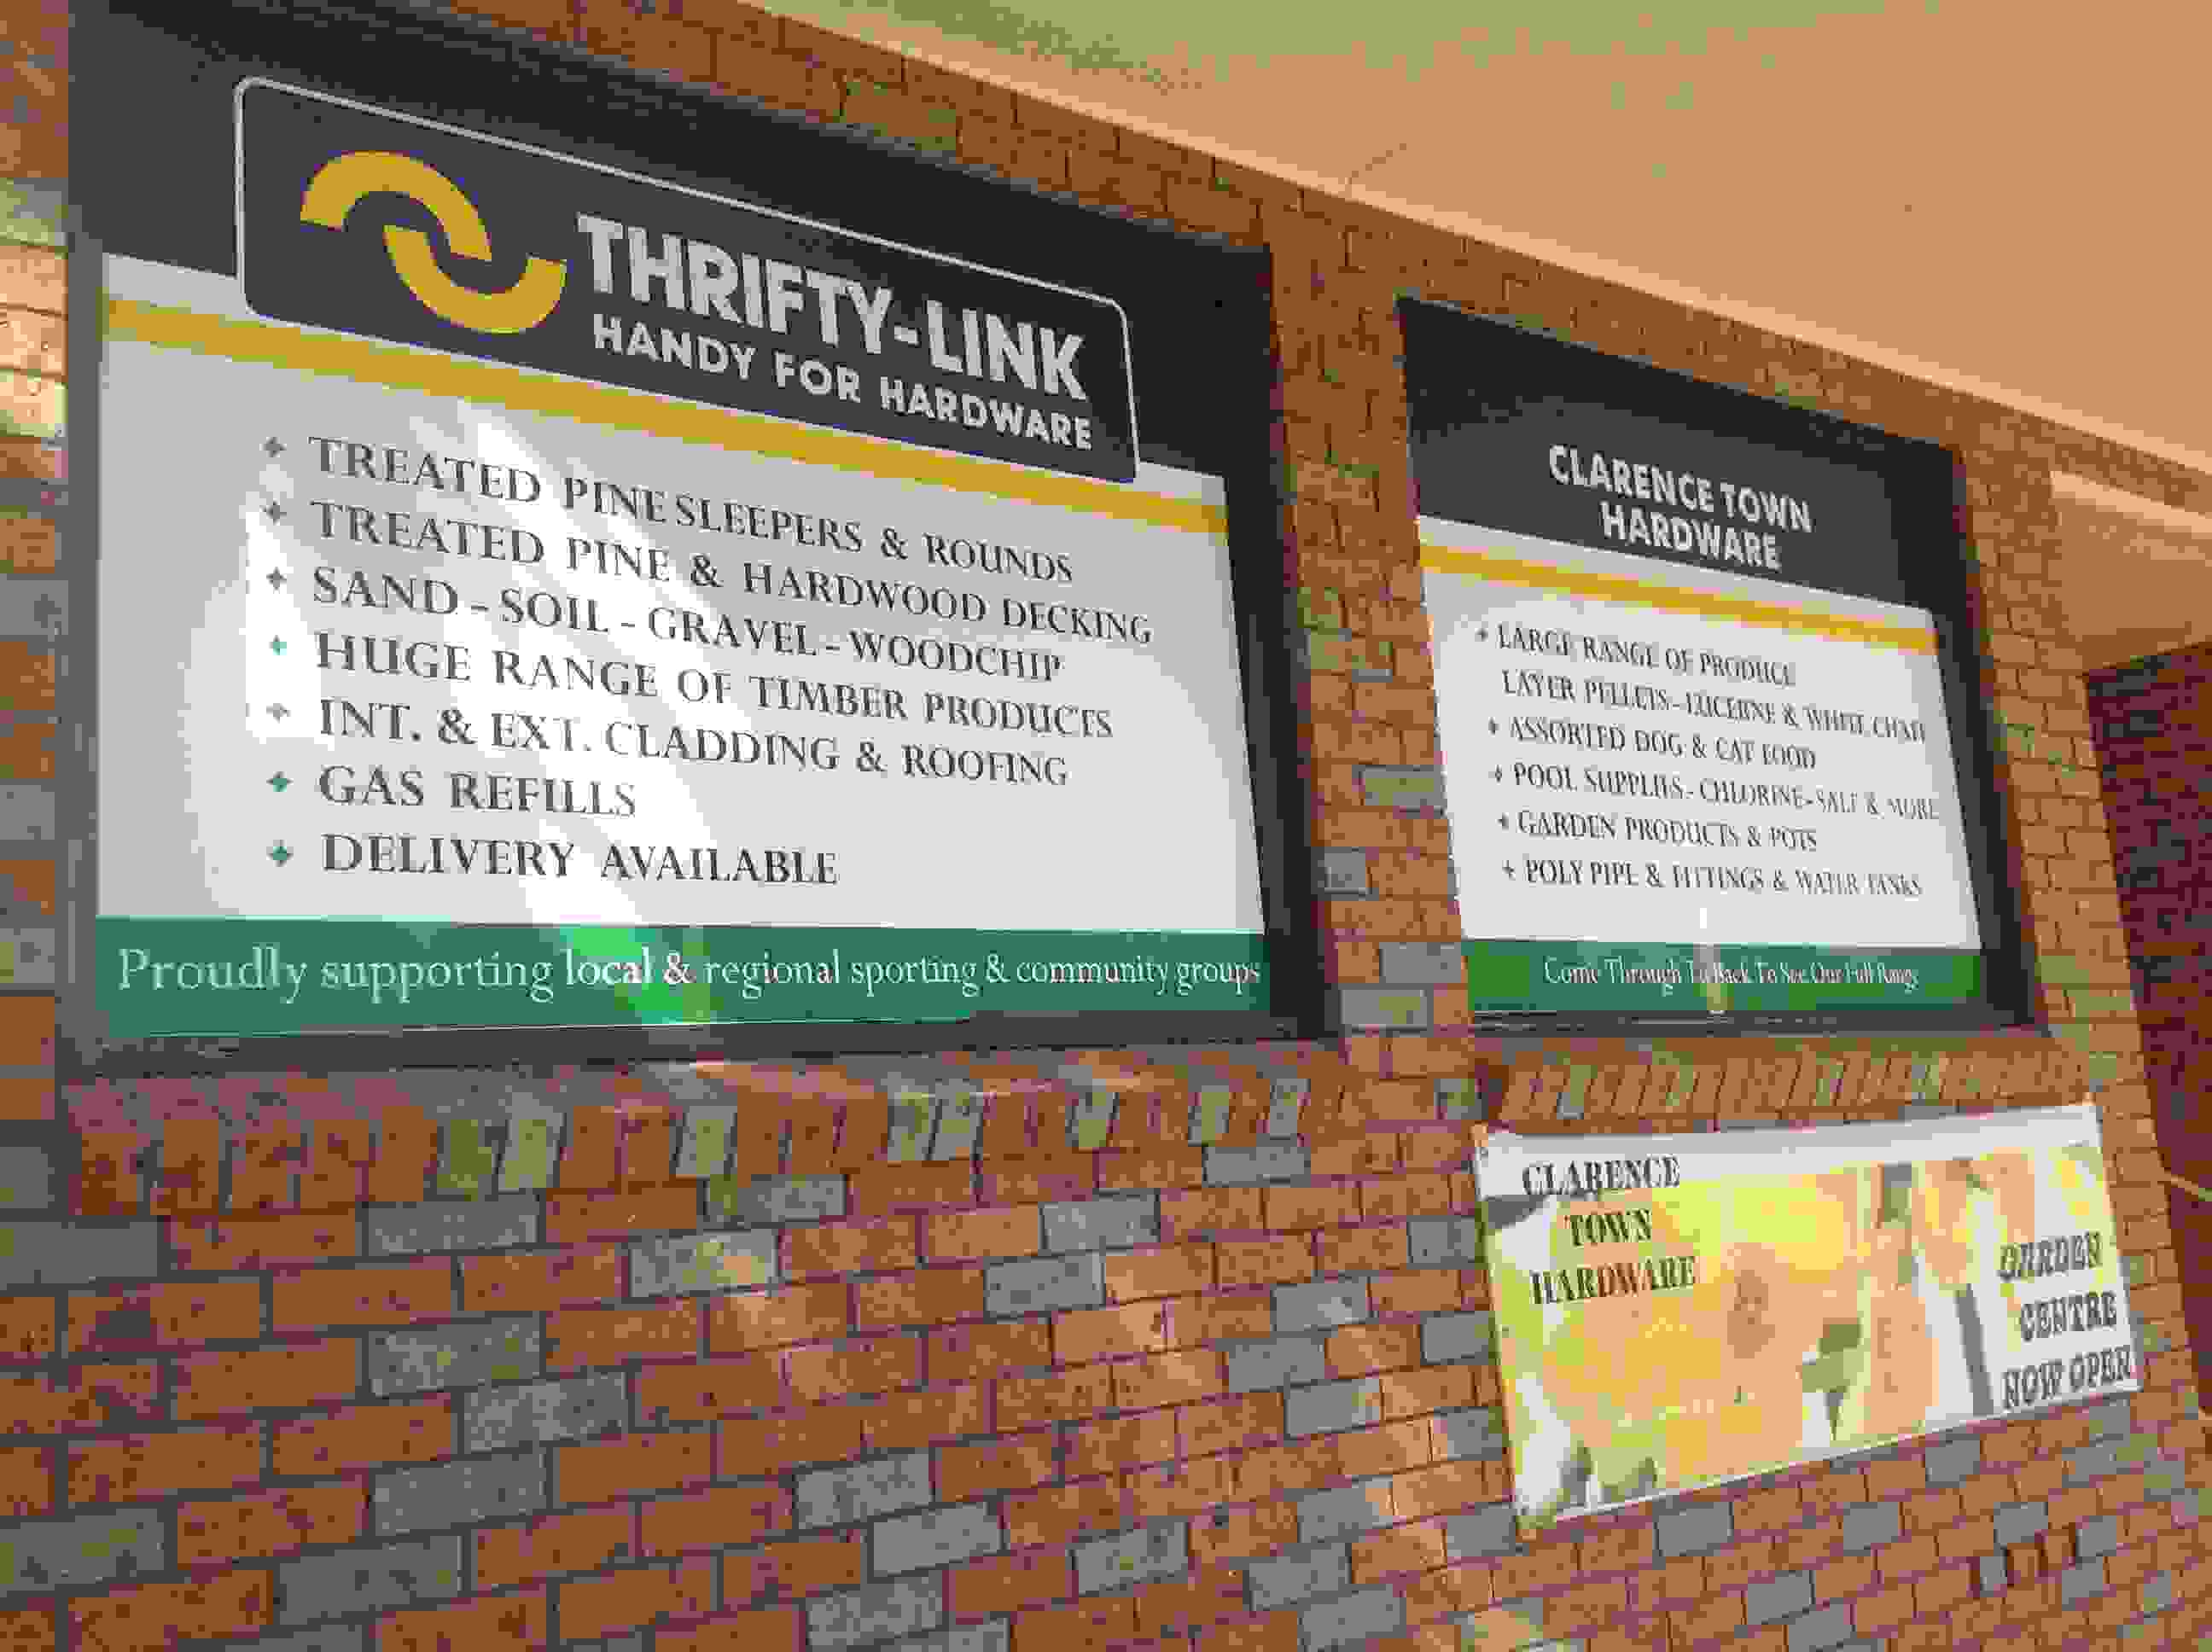 Clarence Town Thrifty Link Store